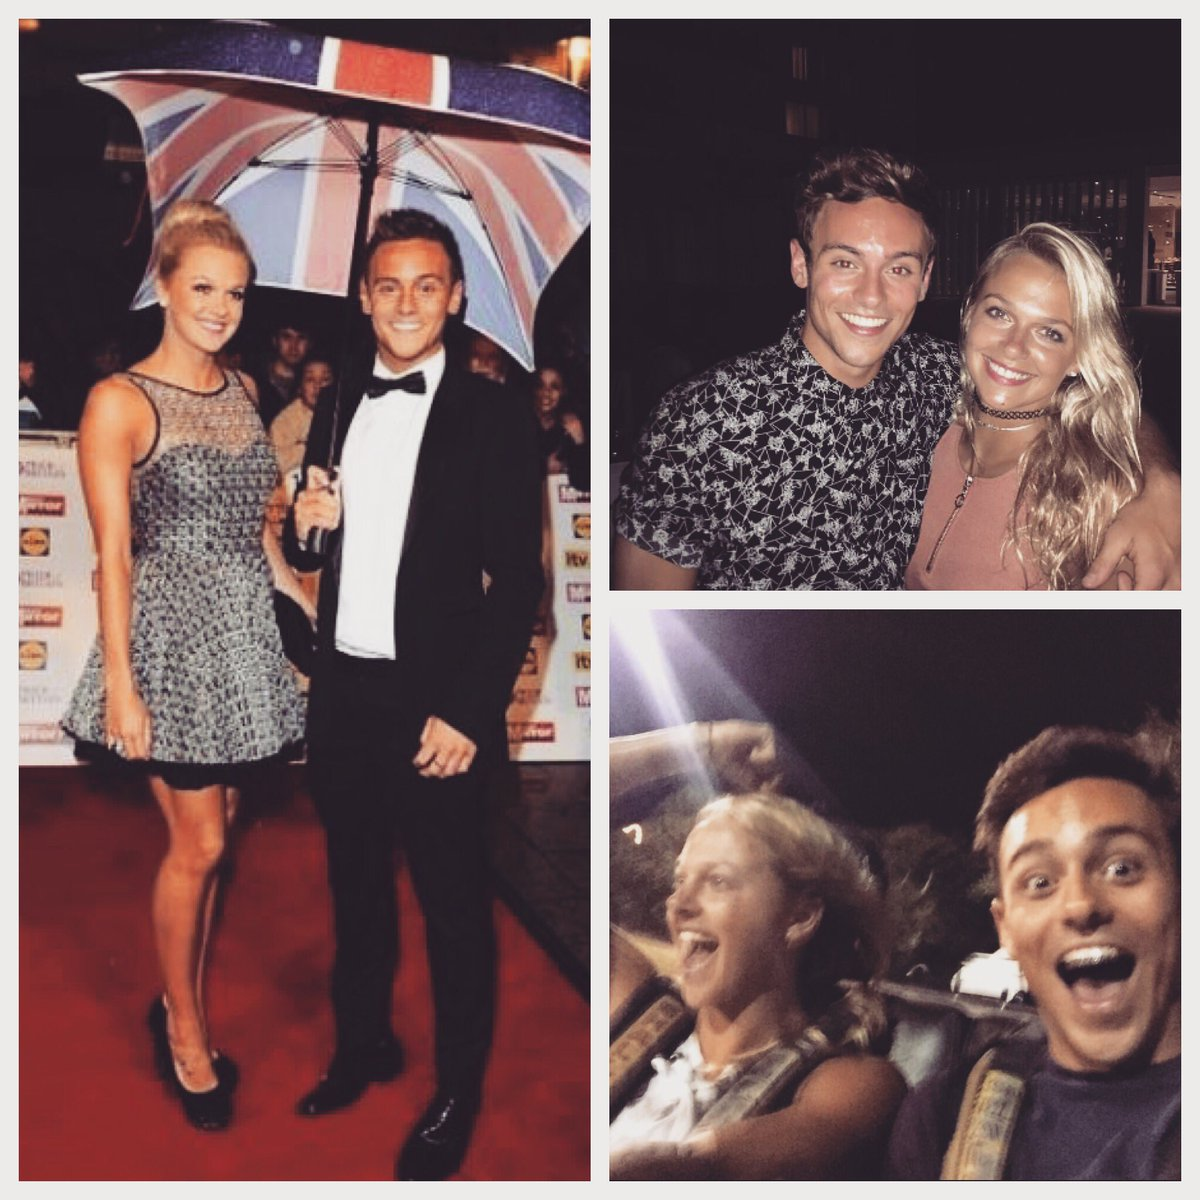 Happy birthday to the most down to earth,kind, and funny guy @TomDaley1994 love you x https://t.co/sg61fehUcc